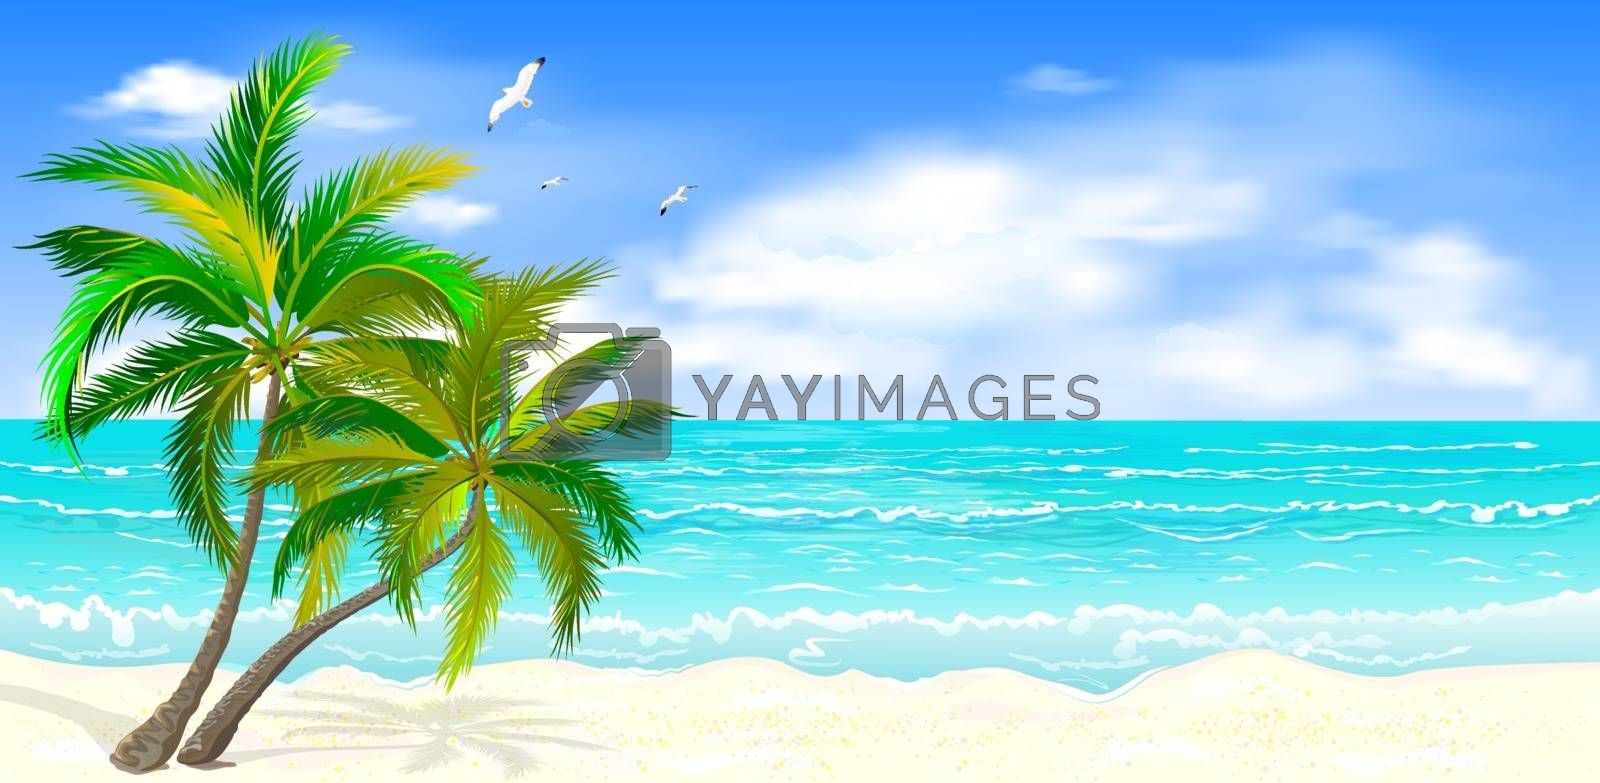 Sea tropical landscape. Sandy beach with palm trees. Seacoast with palm trees, blue sky and white clouds. Palm trees against the background of the sea, sky and clouds.